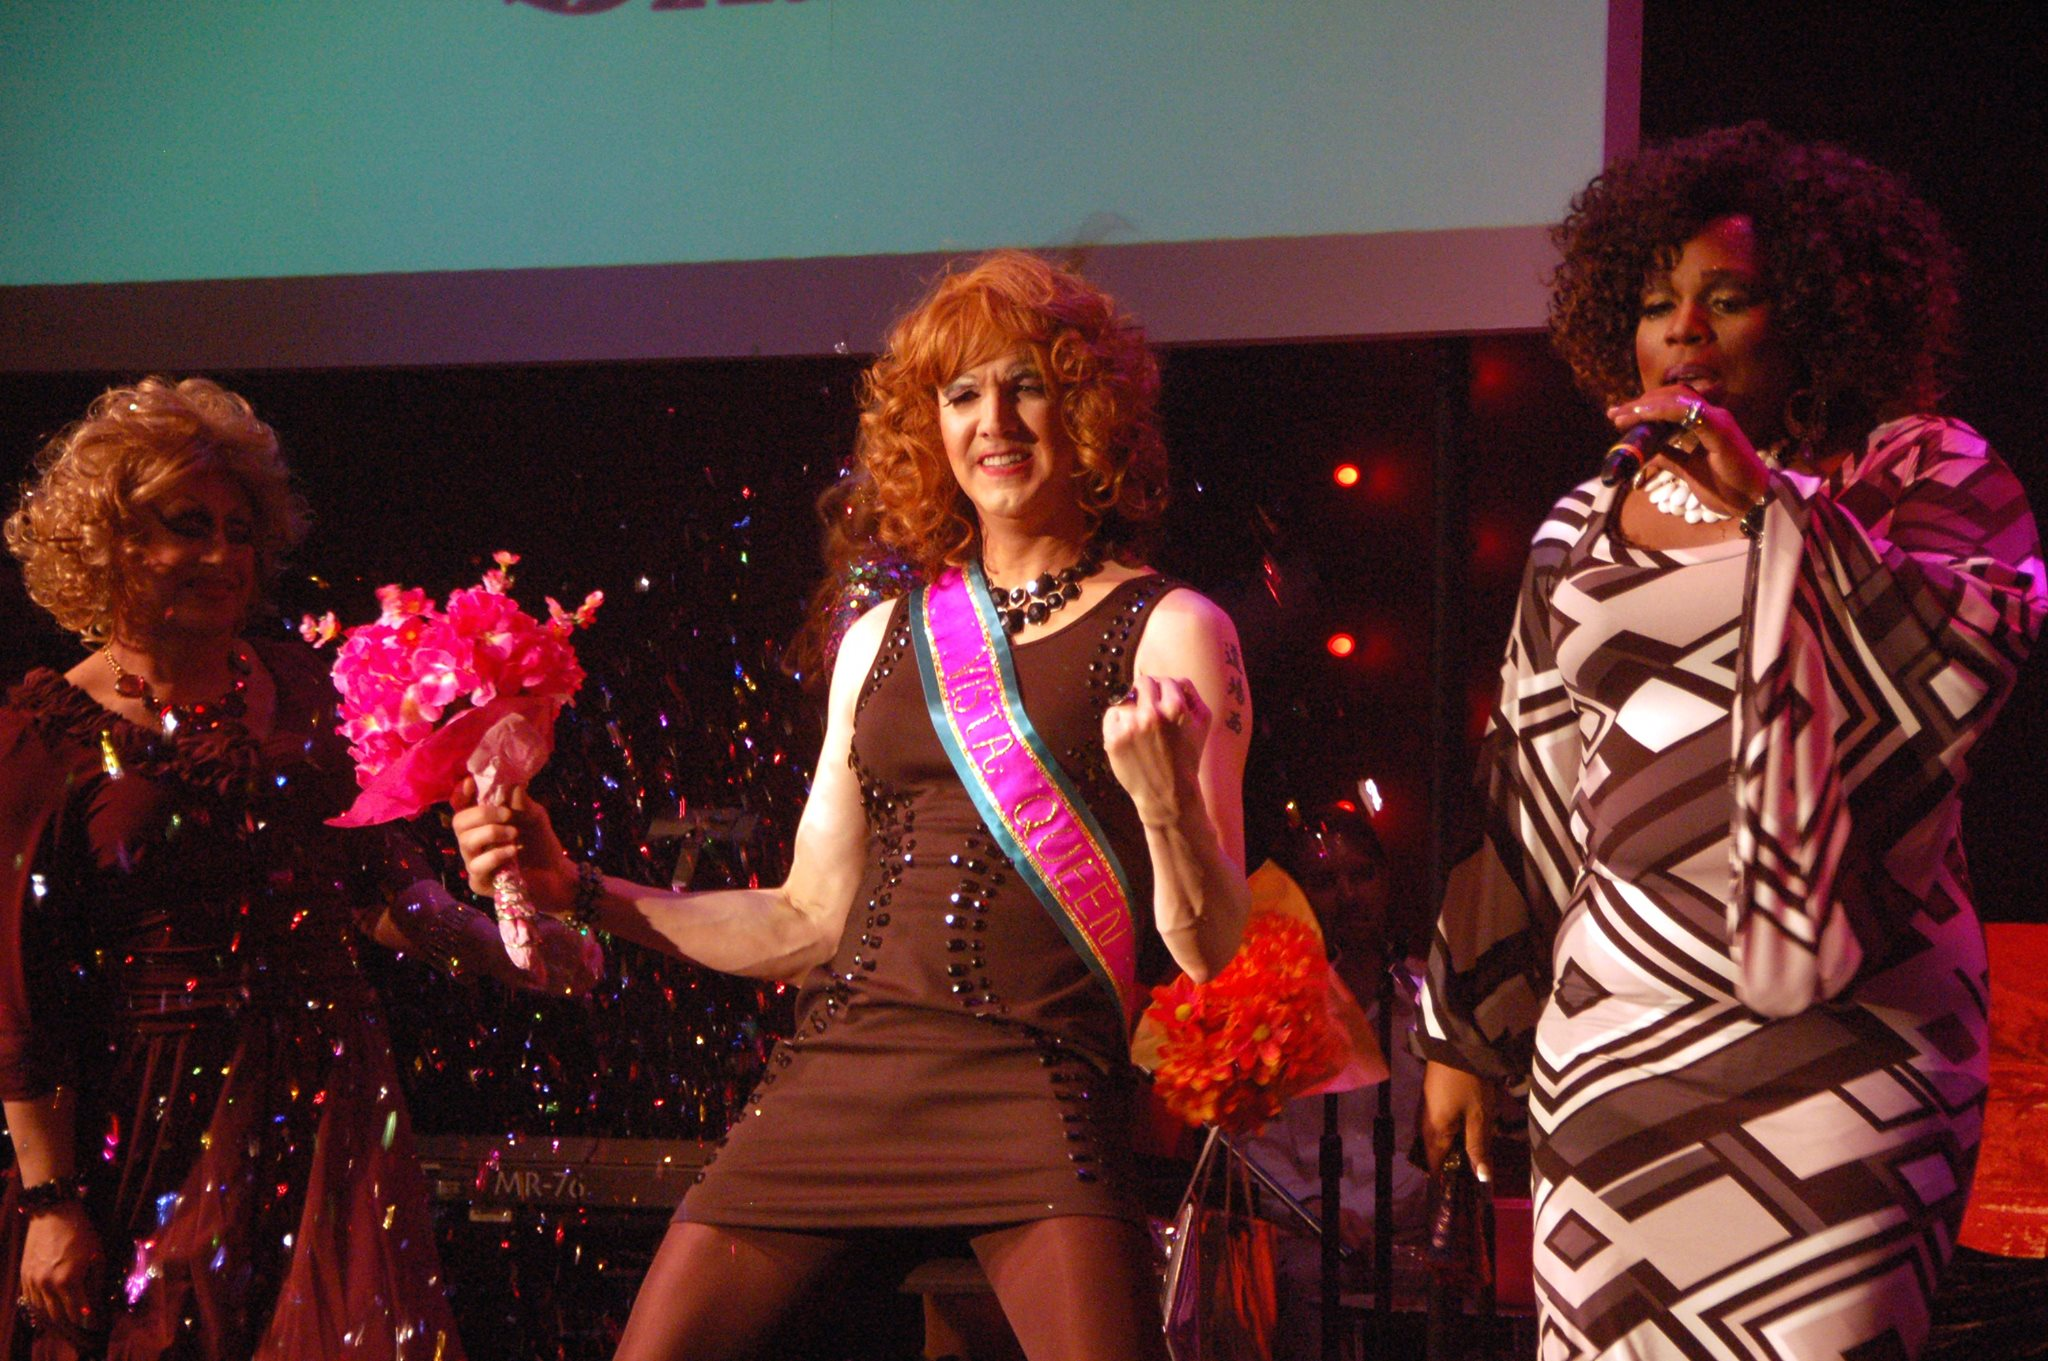 Tess Tickles (Jason Stokes) Performing at the 2014 Vista Queen. Photo by Richard Kiraly.